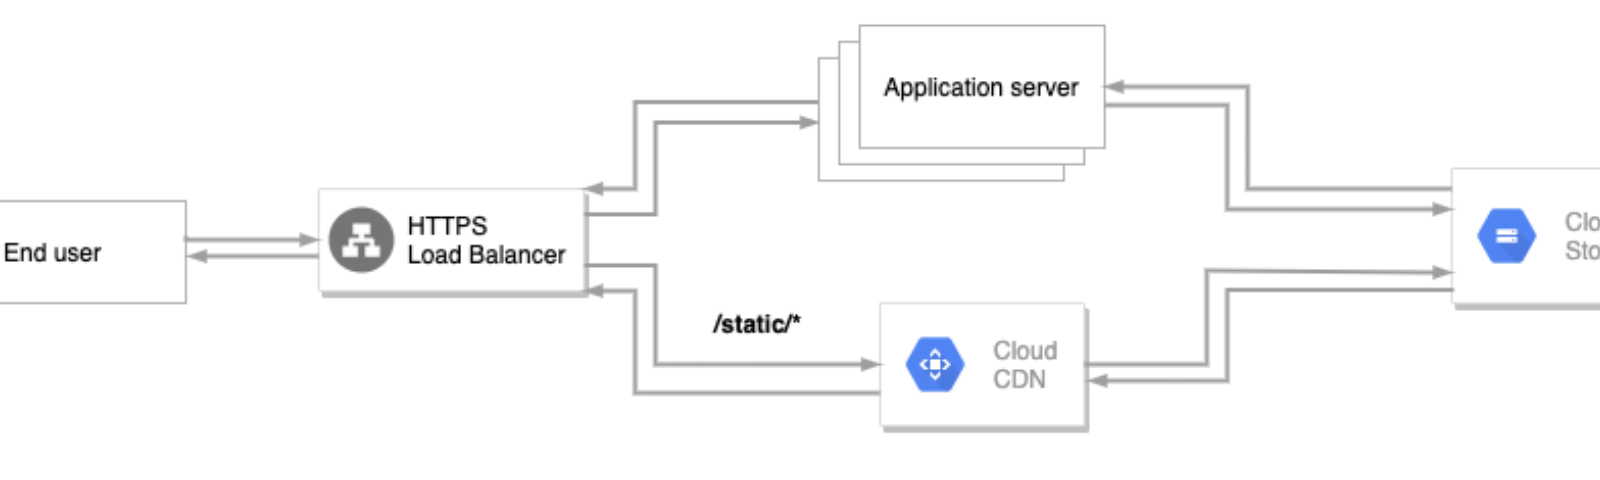 Routing static content requests through a global CDN